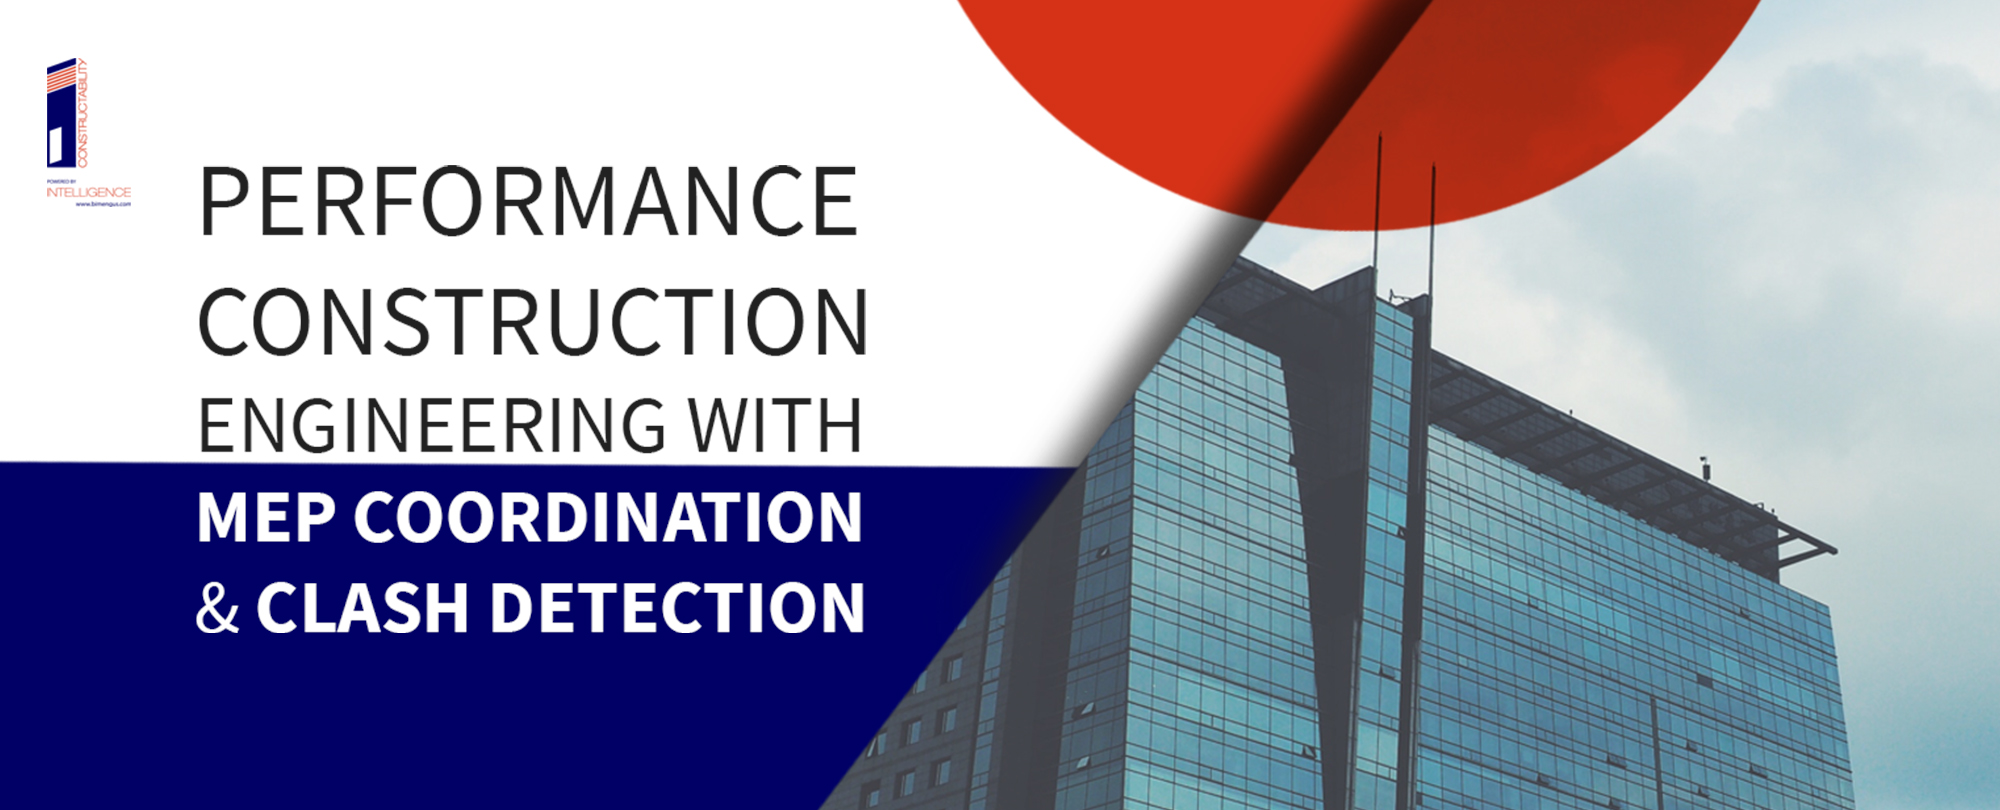 Performance Construction Engineering with MEP Coordination and Clash Detection